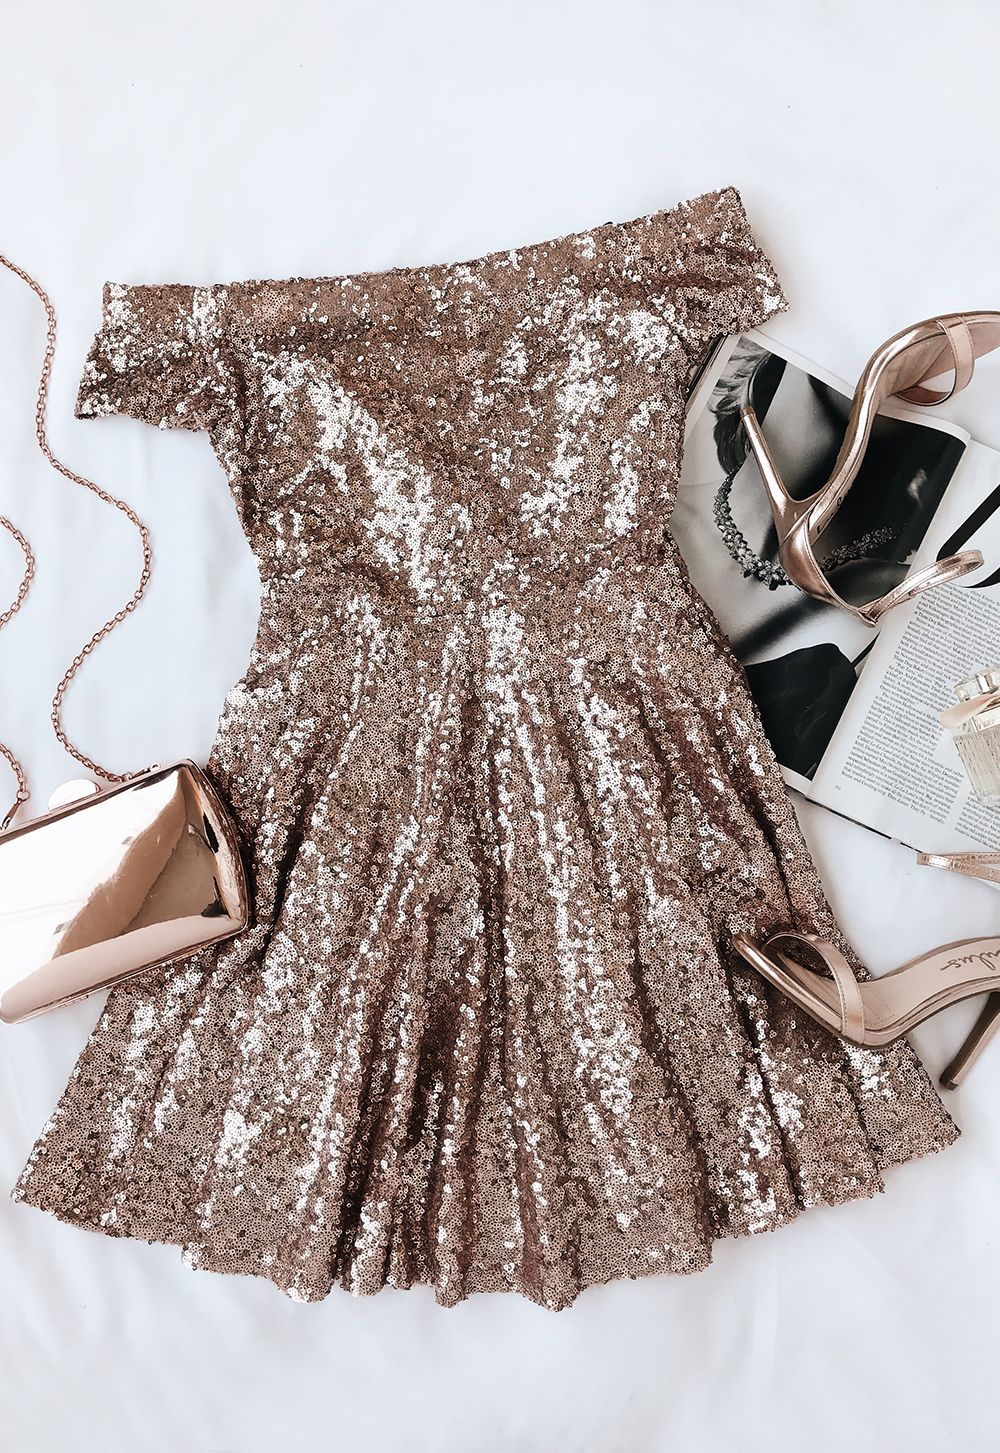 Sparkly Sequin Dresses to Buy in 2019